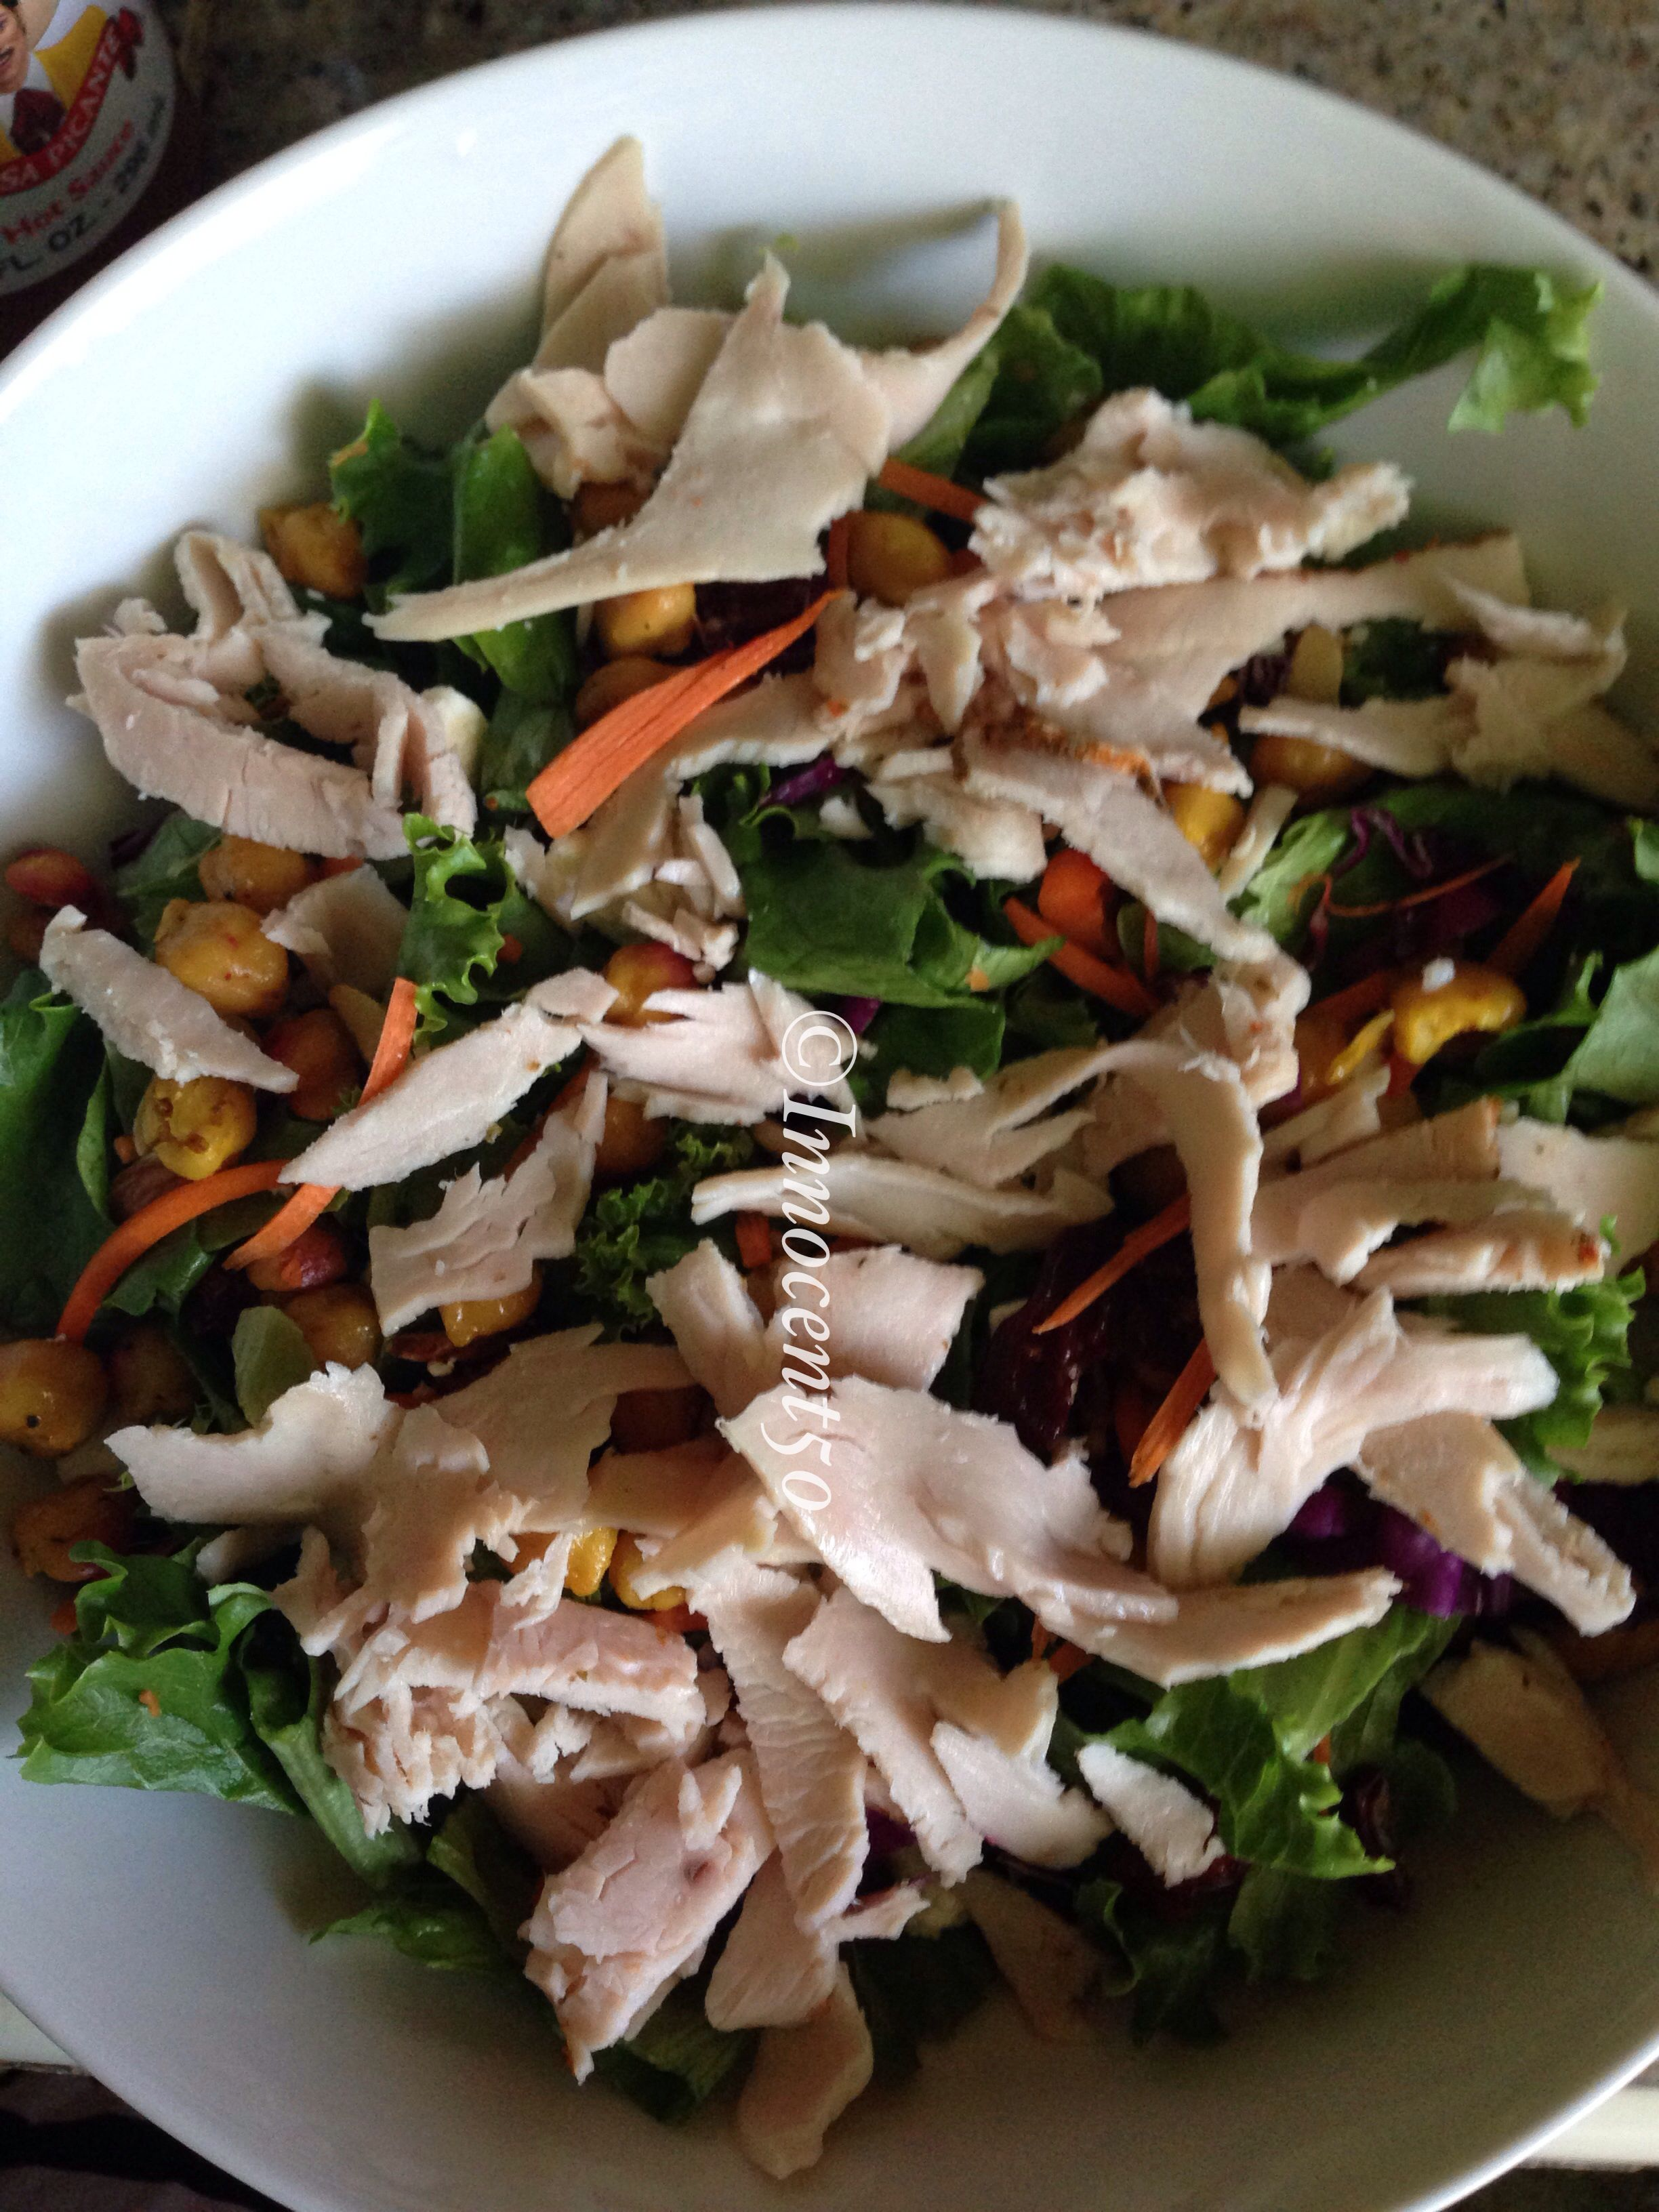 Bistro Salad With Herb roasted turkey breast!!   Fresh leaf blend, Crunchy carrot , Sliced honey roasted almond, Feta cheese, Dried cranberries, Turkey and white balsamic dressing #organic #paleo #mywholefoodlife #mindbodygreen #cleaneatingrecipes #caribbeangirl #cleaneating #healthylifestyle #healthyfoodshare #healthyliving #fooporn #foodie #beautybleand #wholefoods #weightloss #superfoods #islandgirl #instafood